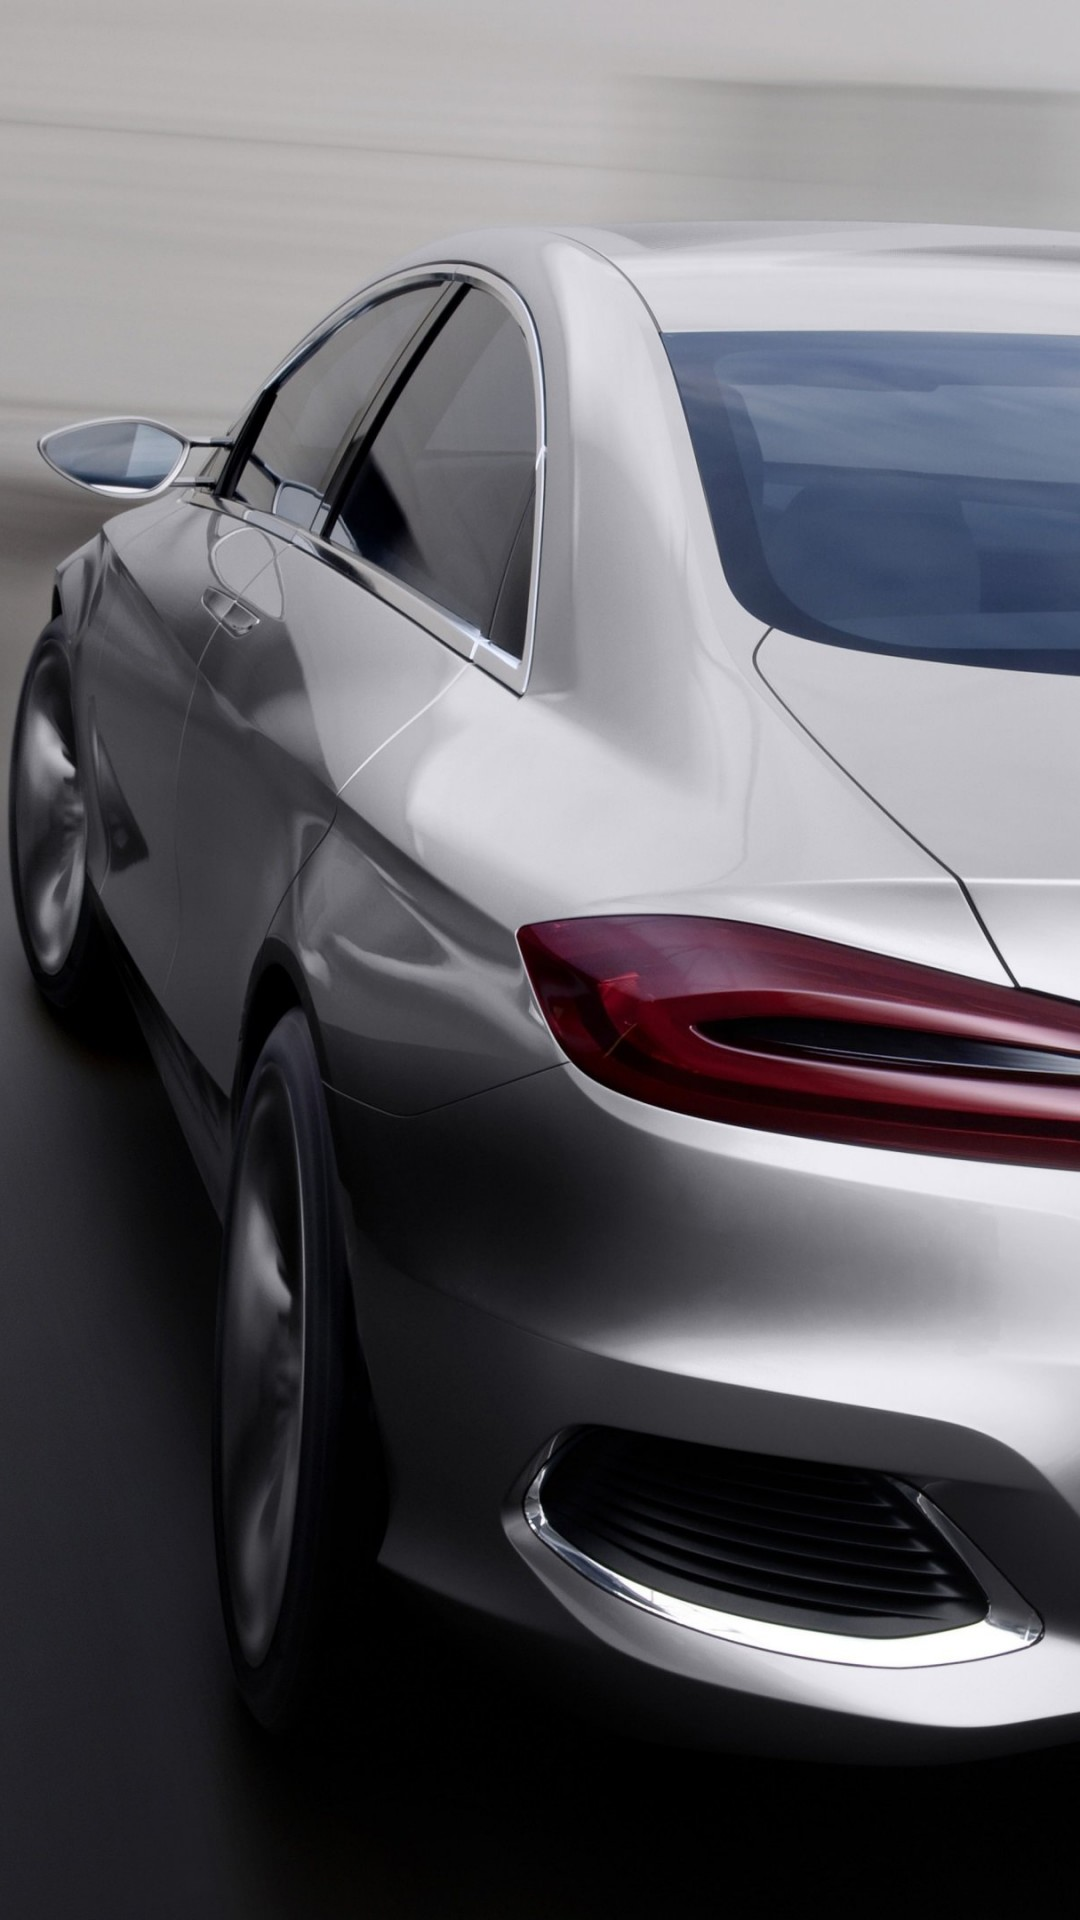 Mercedes Benz F800 Concept Rear View Wallpaper for HTC One